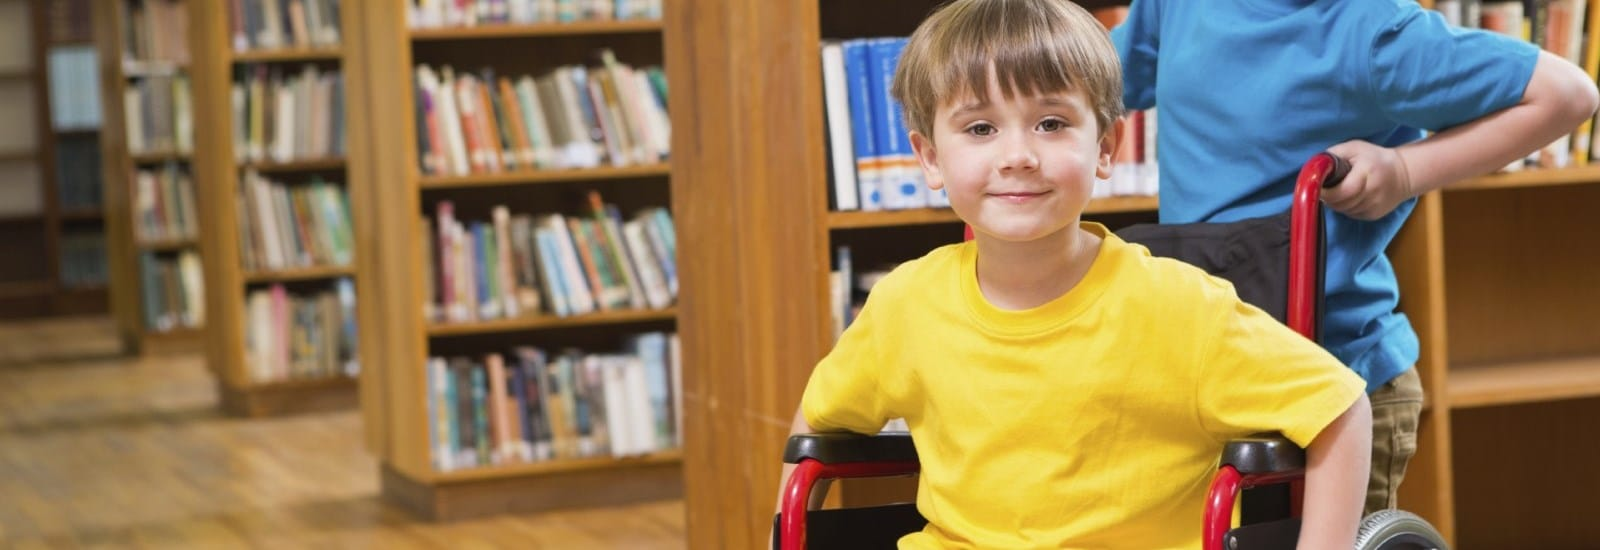 Boy in wheelchair in library